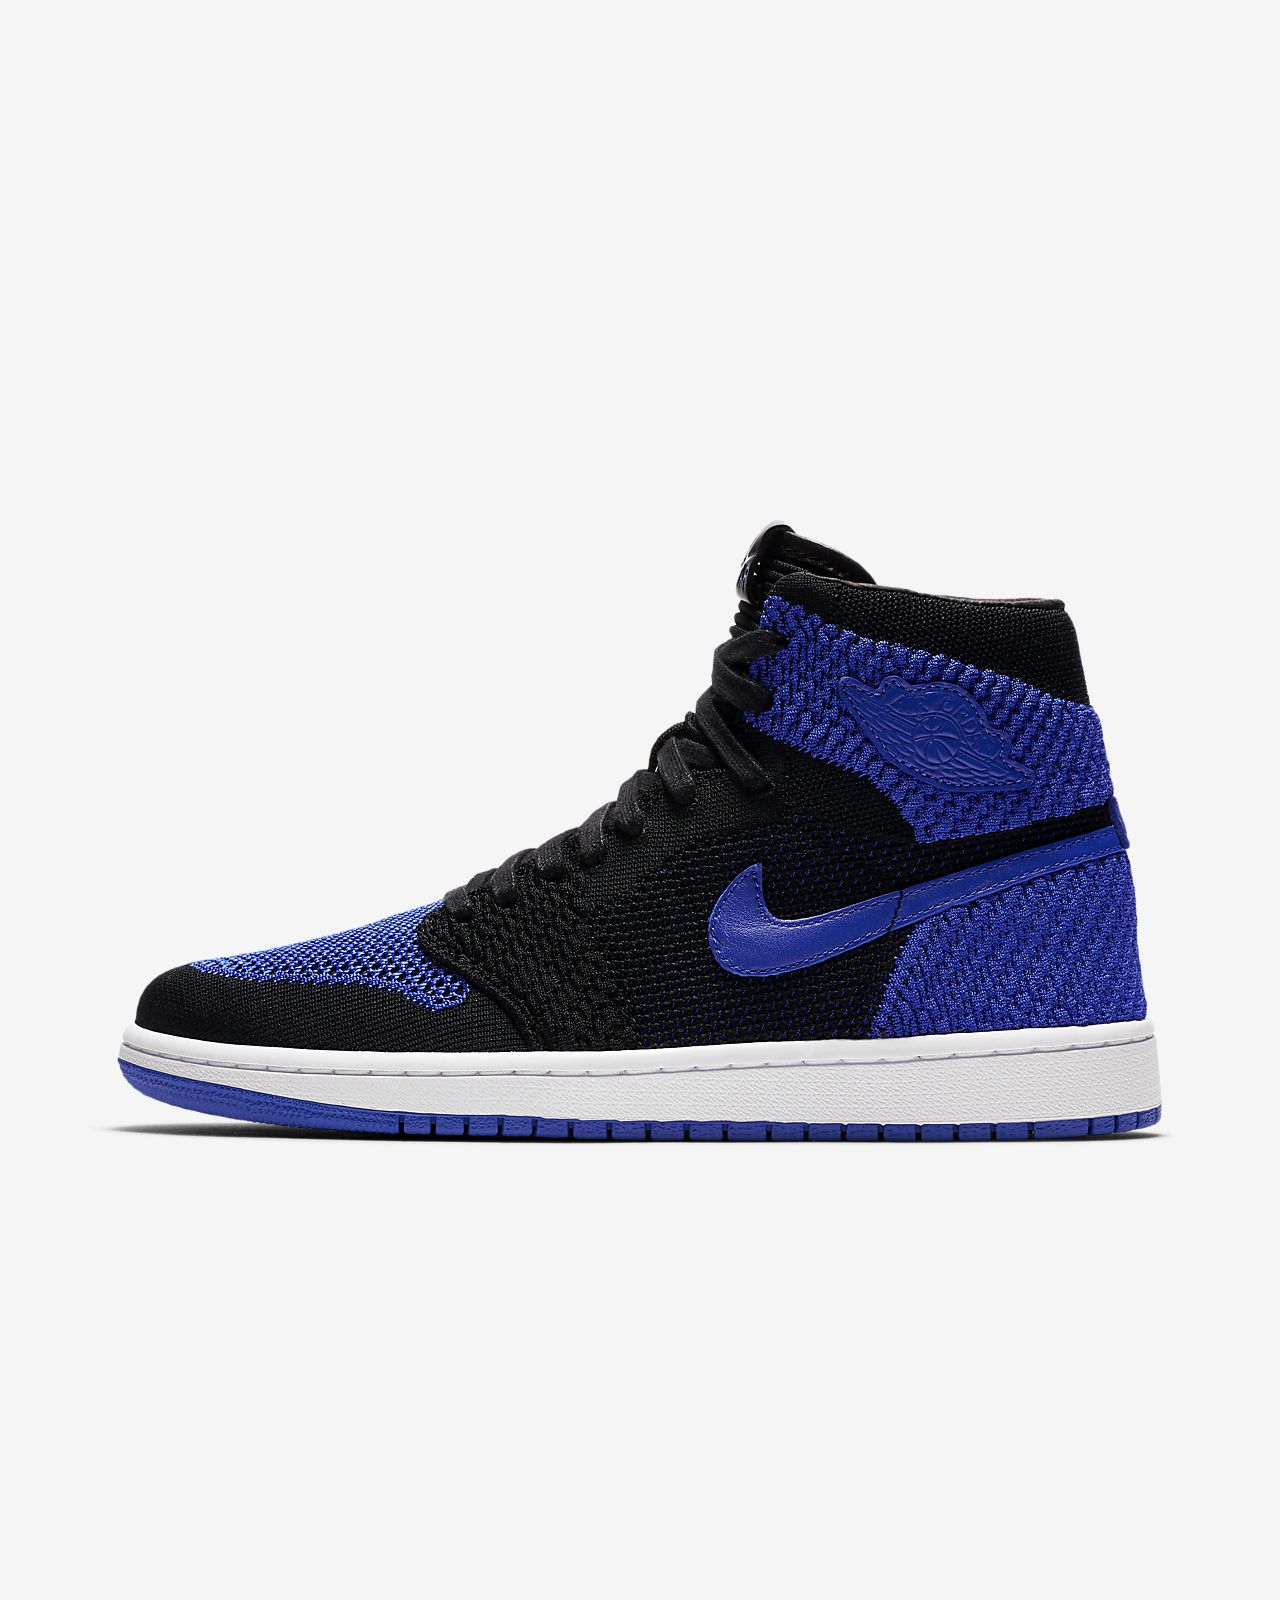 5ce48f1b458423 Air Jordan 1 Retro High Flyknit Men s Shoe. Nike.com ZA